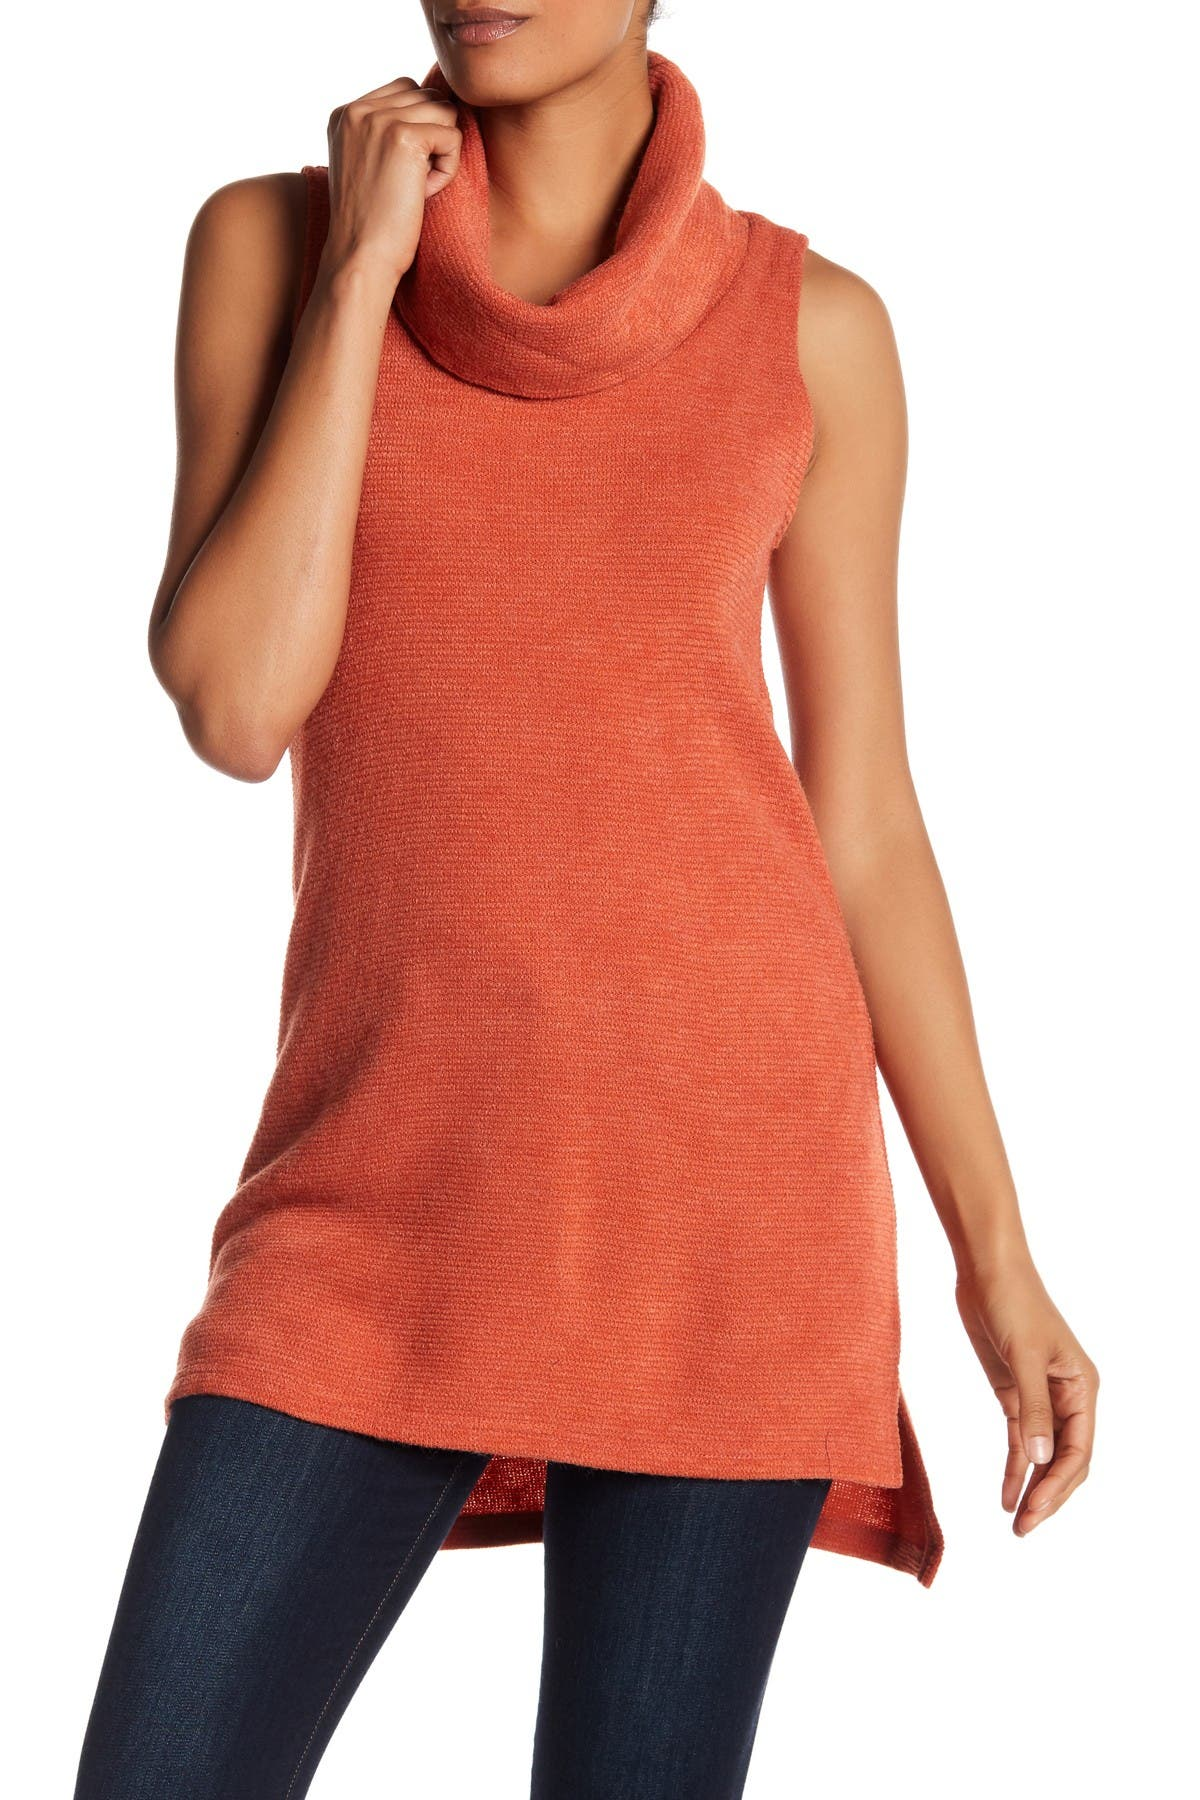 Image of Papillon Cowl Neck Sleeveless Hi-Low Sweater